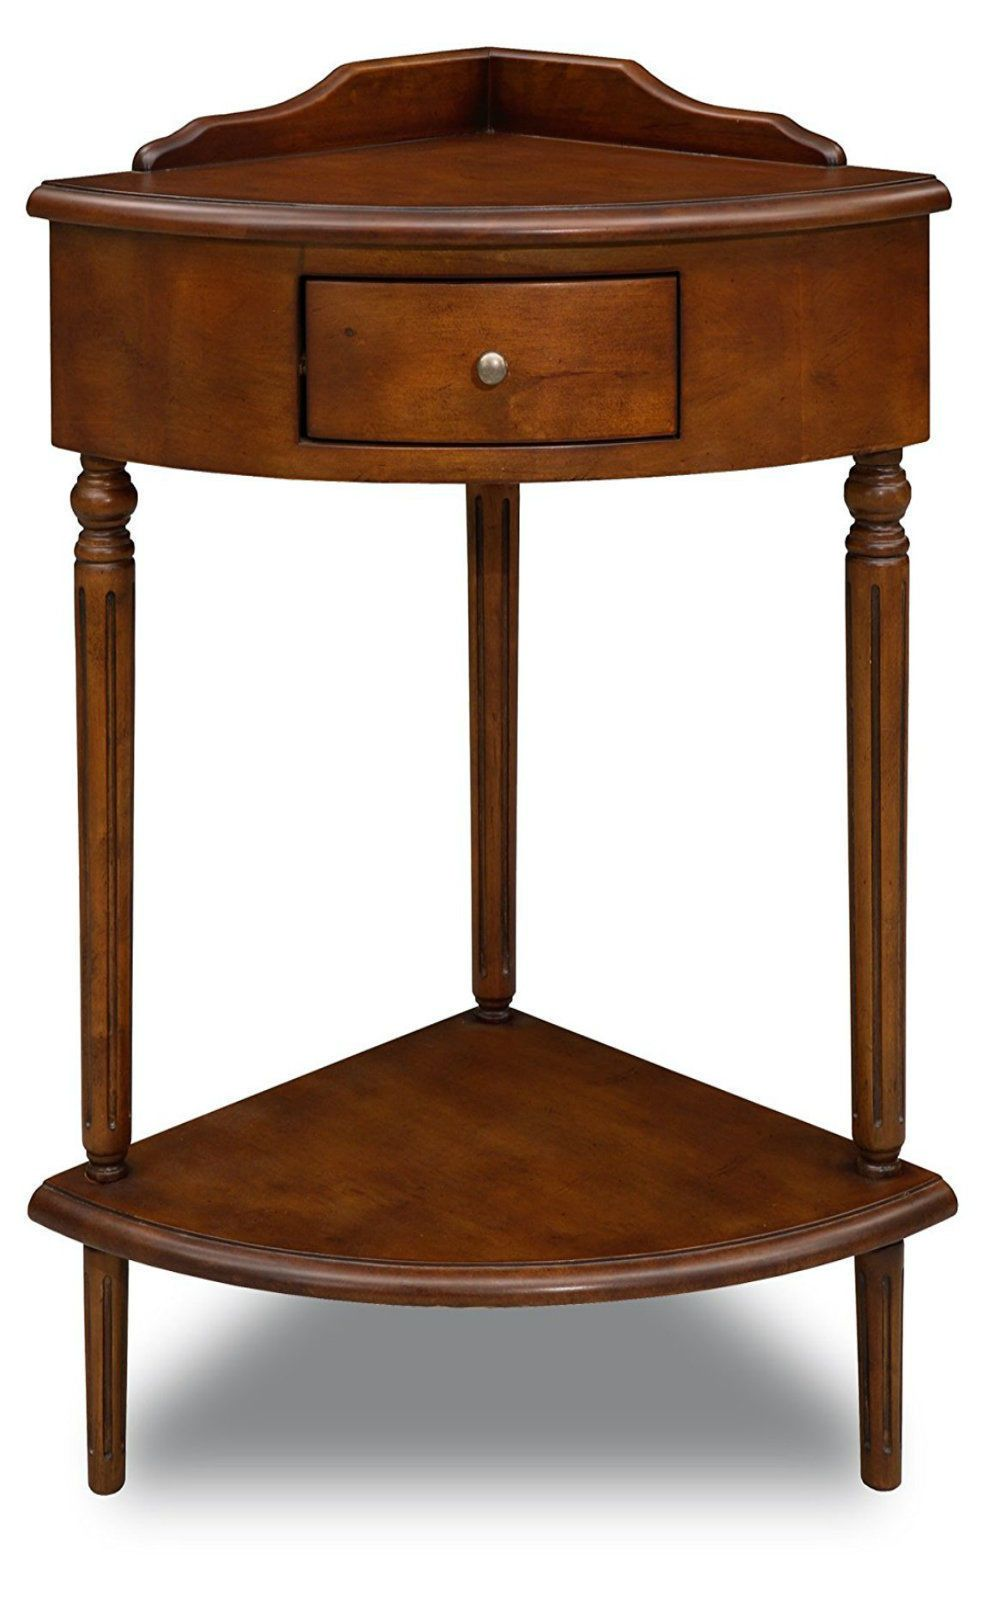 Antique Wooden Corner Accent End Table Desk with Drawer Box, Made from  Hardwood - Antique Wooden Corner Accent End Table Desk With Drawer Box, Made